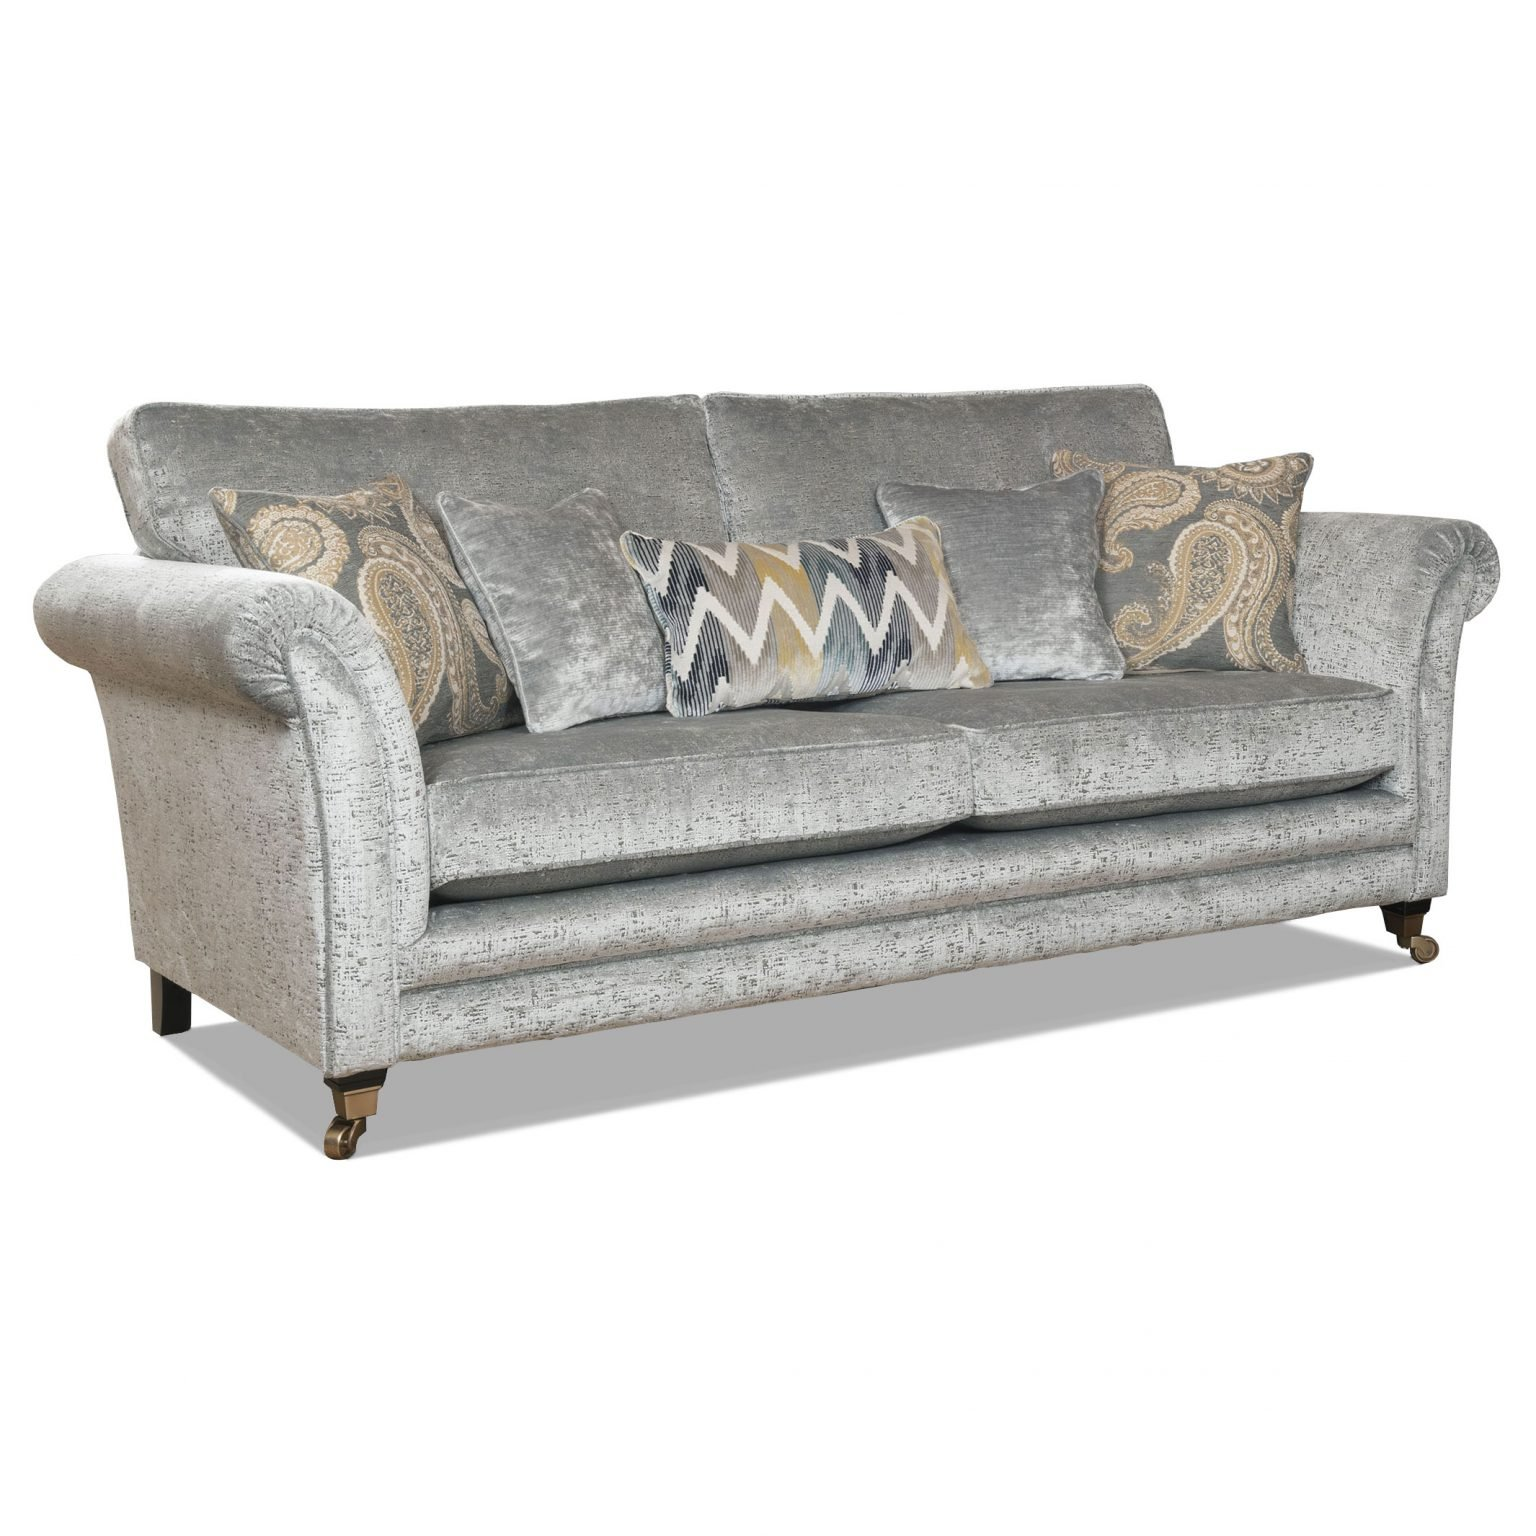 Buy Alstons Lowry Grande Sofas At Uk S Best Prices Claytons Carpets Lincoln